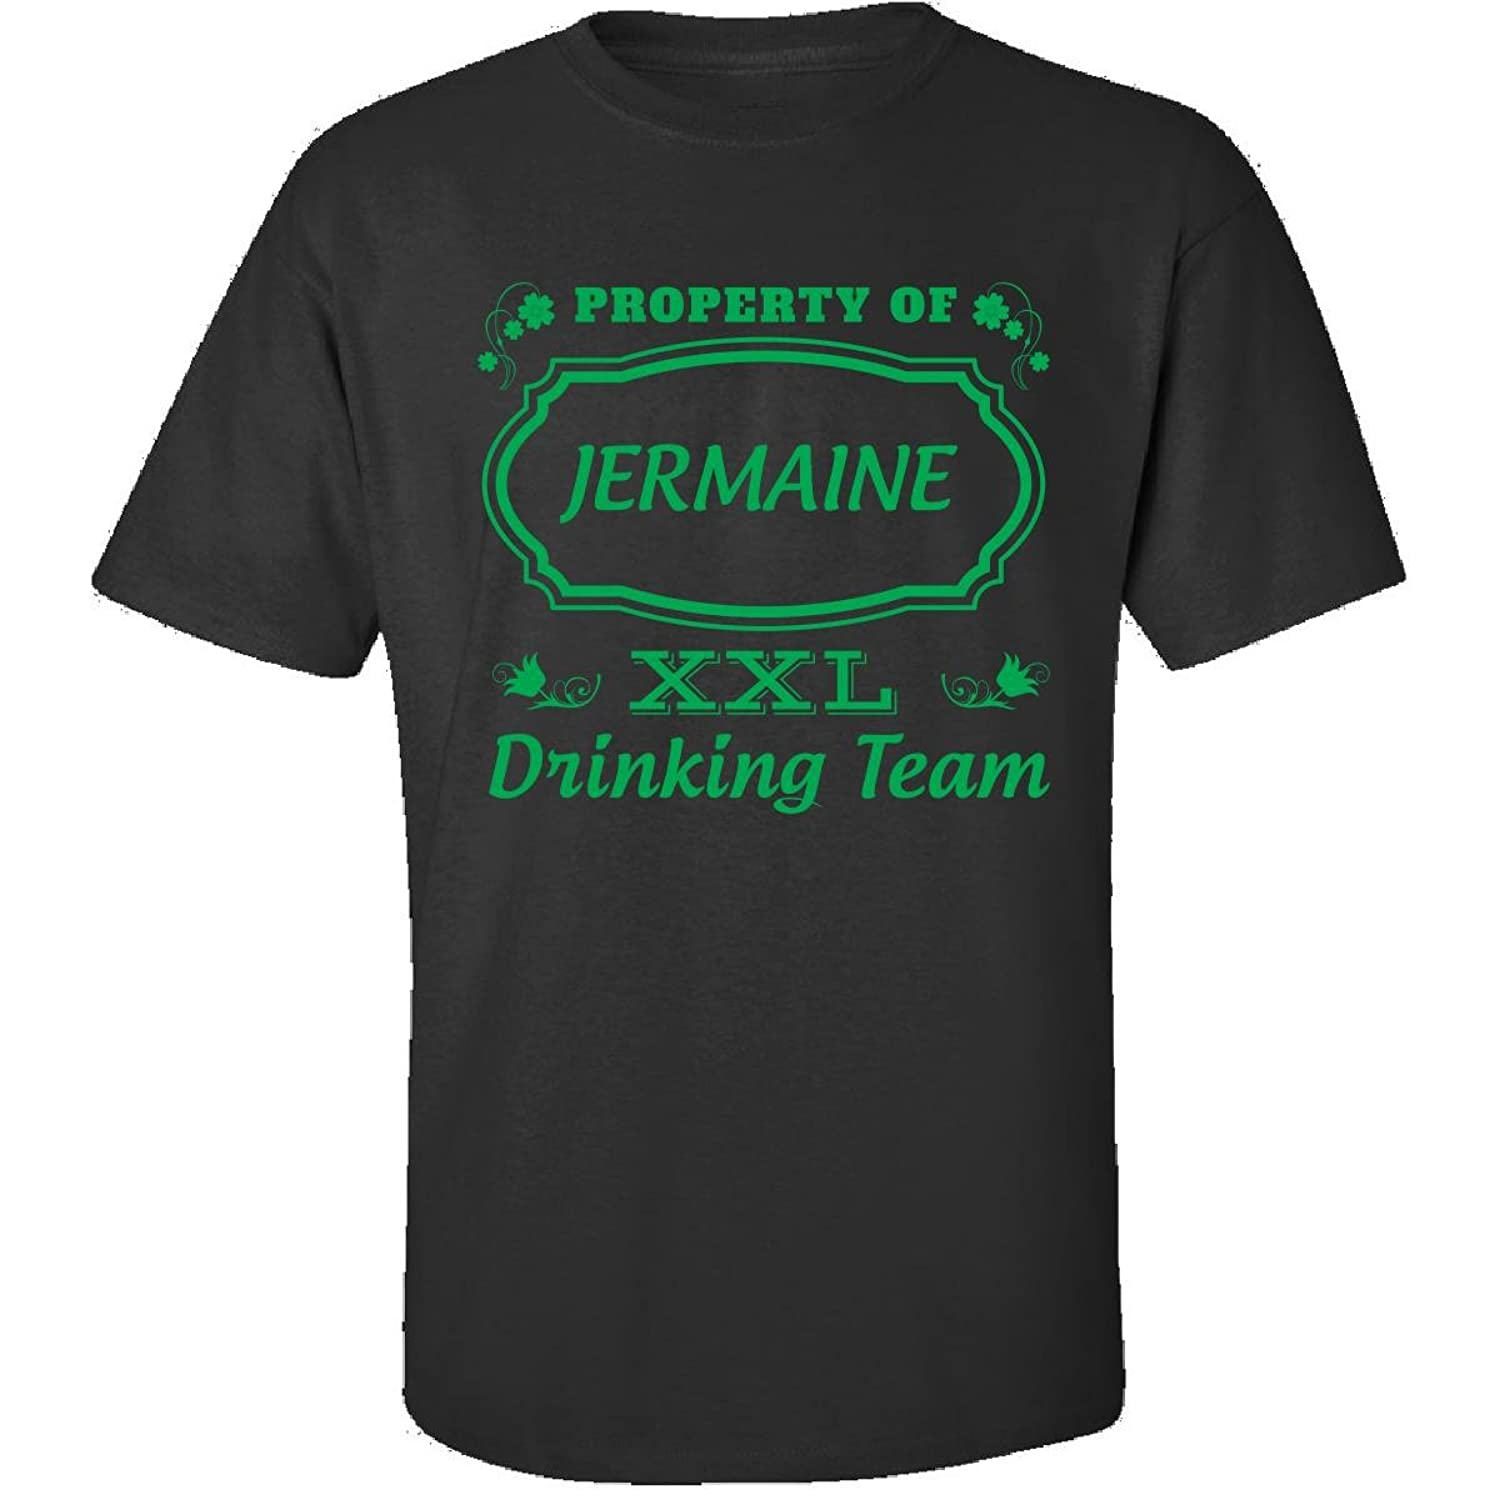 Property Of Jermaine St Patrick Day Beer Drinking Team - Adult Shirt